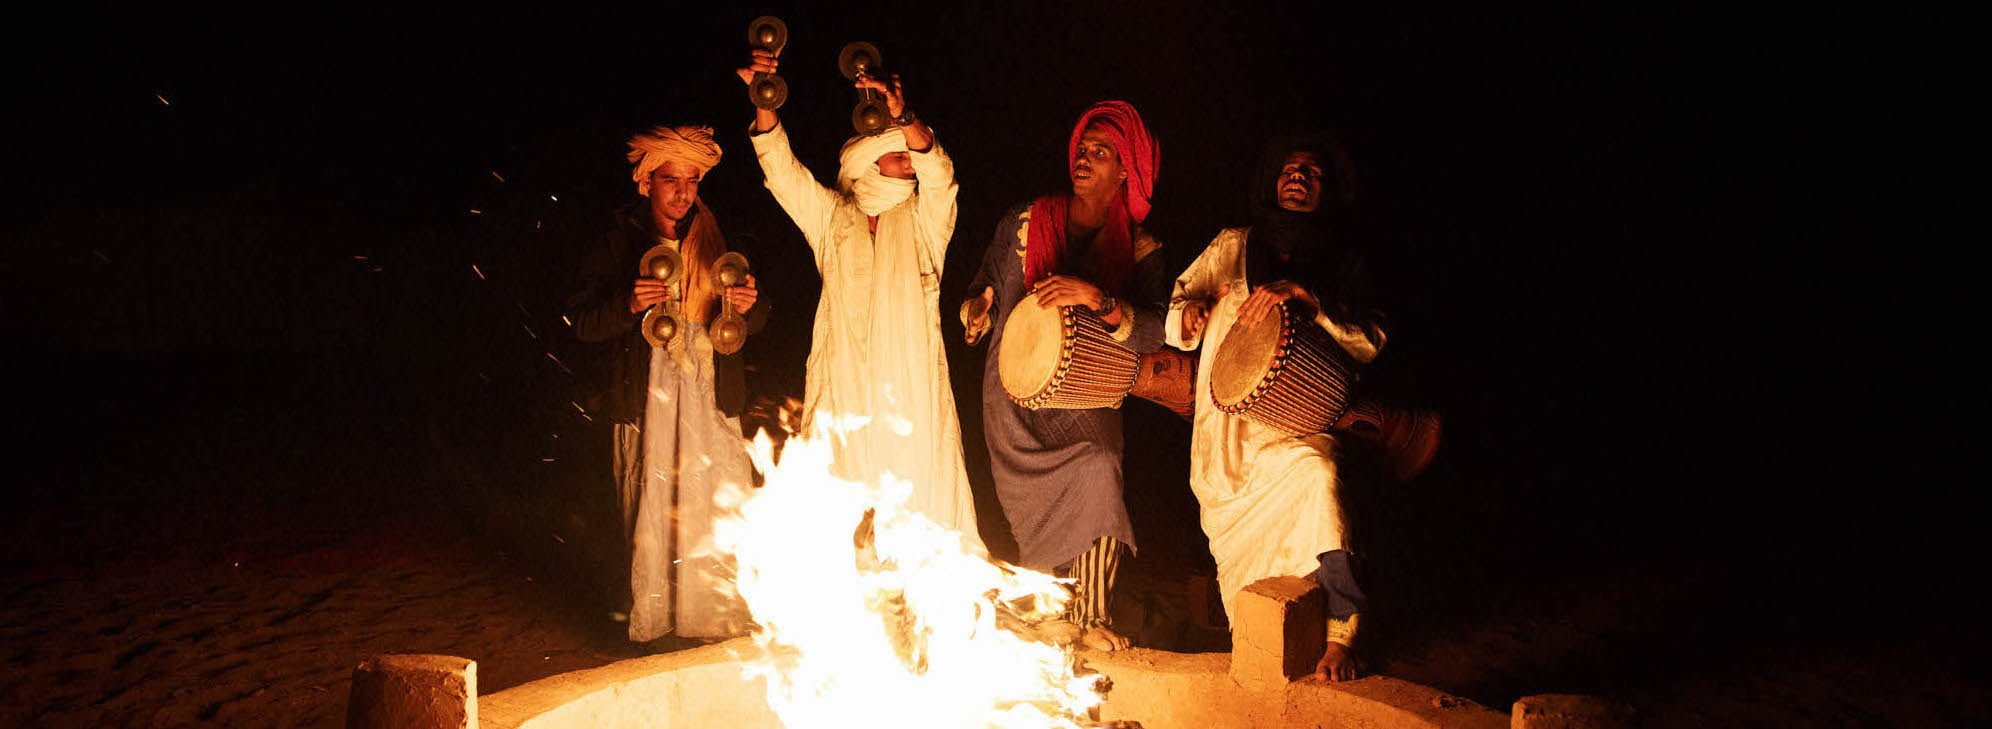 Traditional Ceremony with Drums by Camp Fire at Moroccan Desert Camp